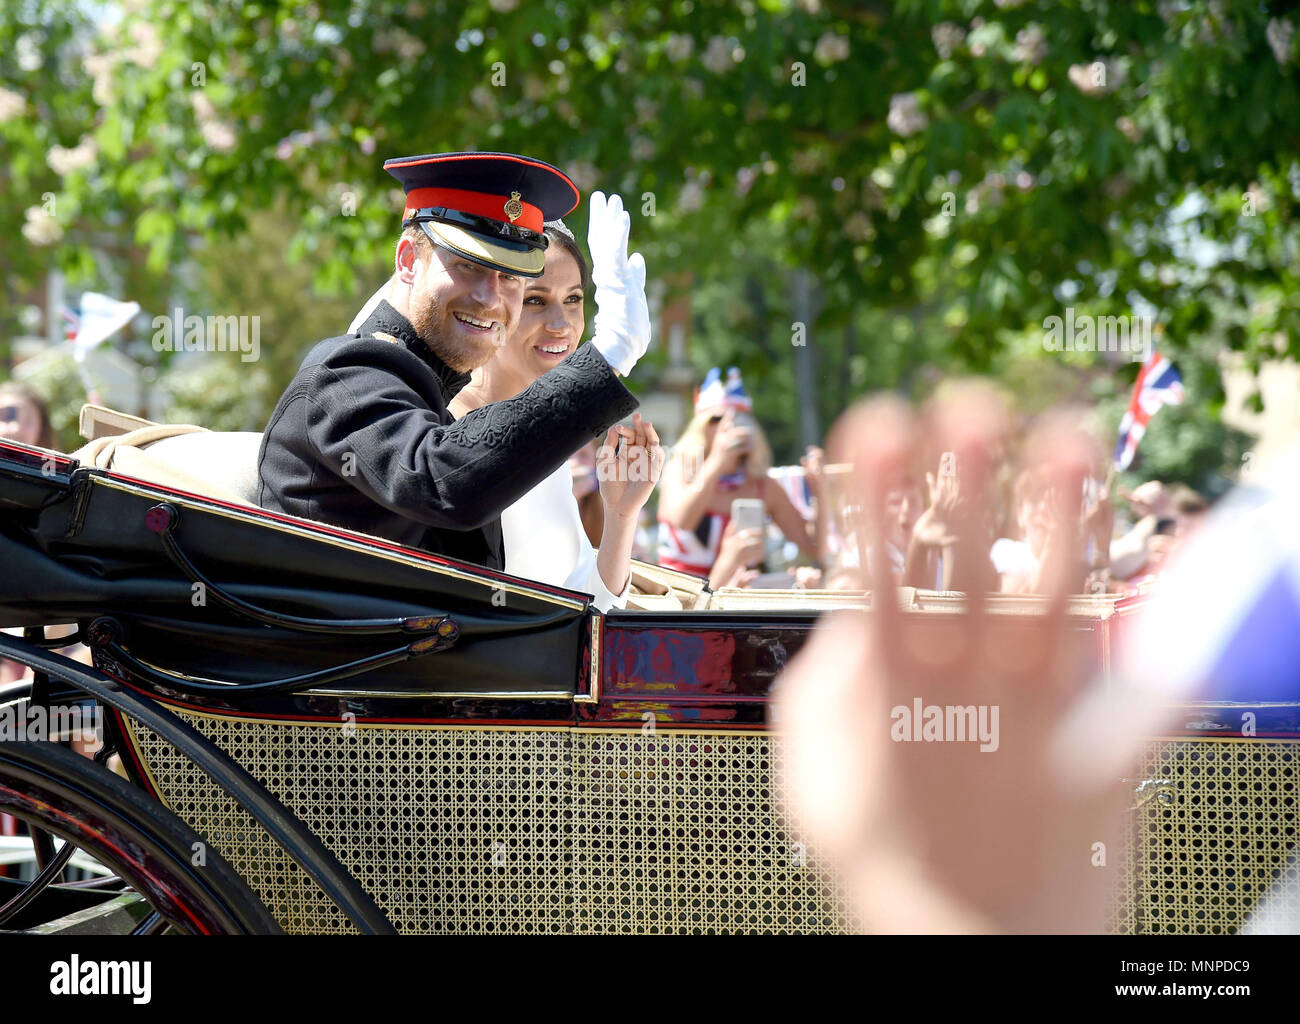 Windsor, UK. 19th May 2018. Meghan Markle and Prince Harry during the carriage procession on the Long Walk Credit: Finnbarr Webster/Alamy Live News Stock Photo